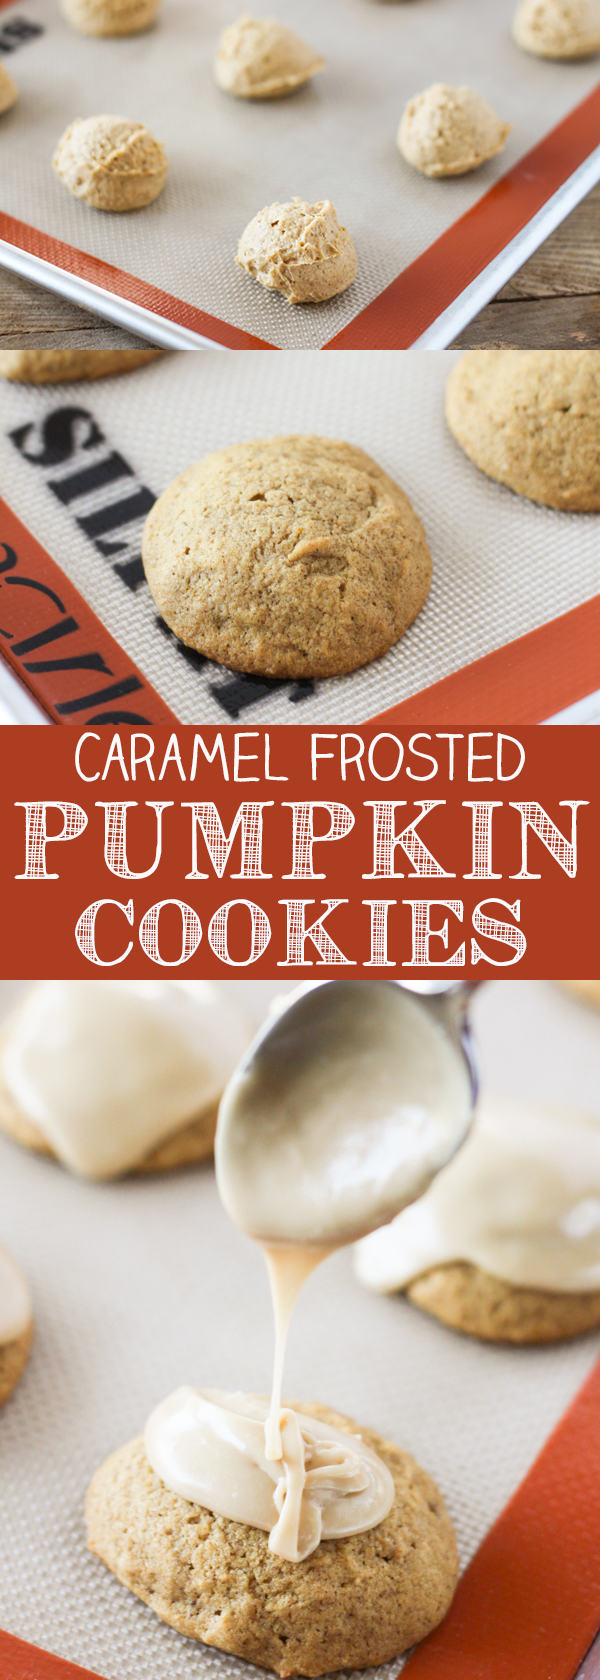 Super soft Caramel Frosted Pumpkin Cookies loaded with pumpkin pie spice and topped with a homemade caramel frosting.